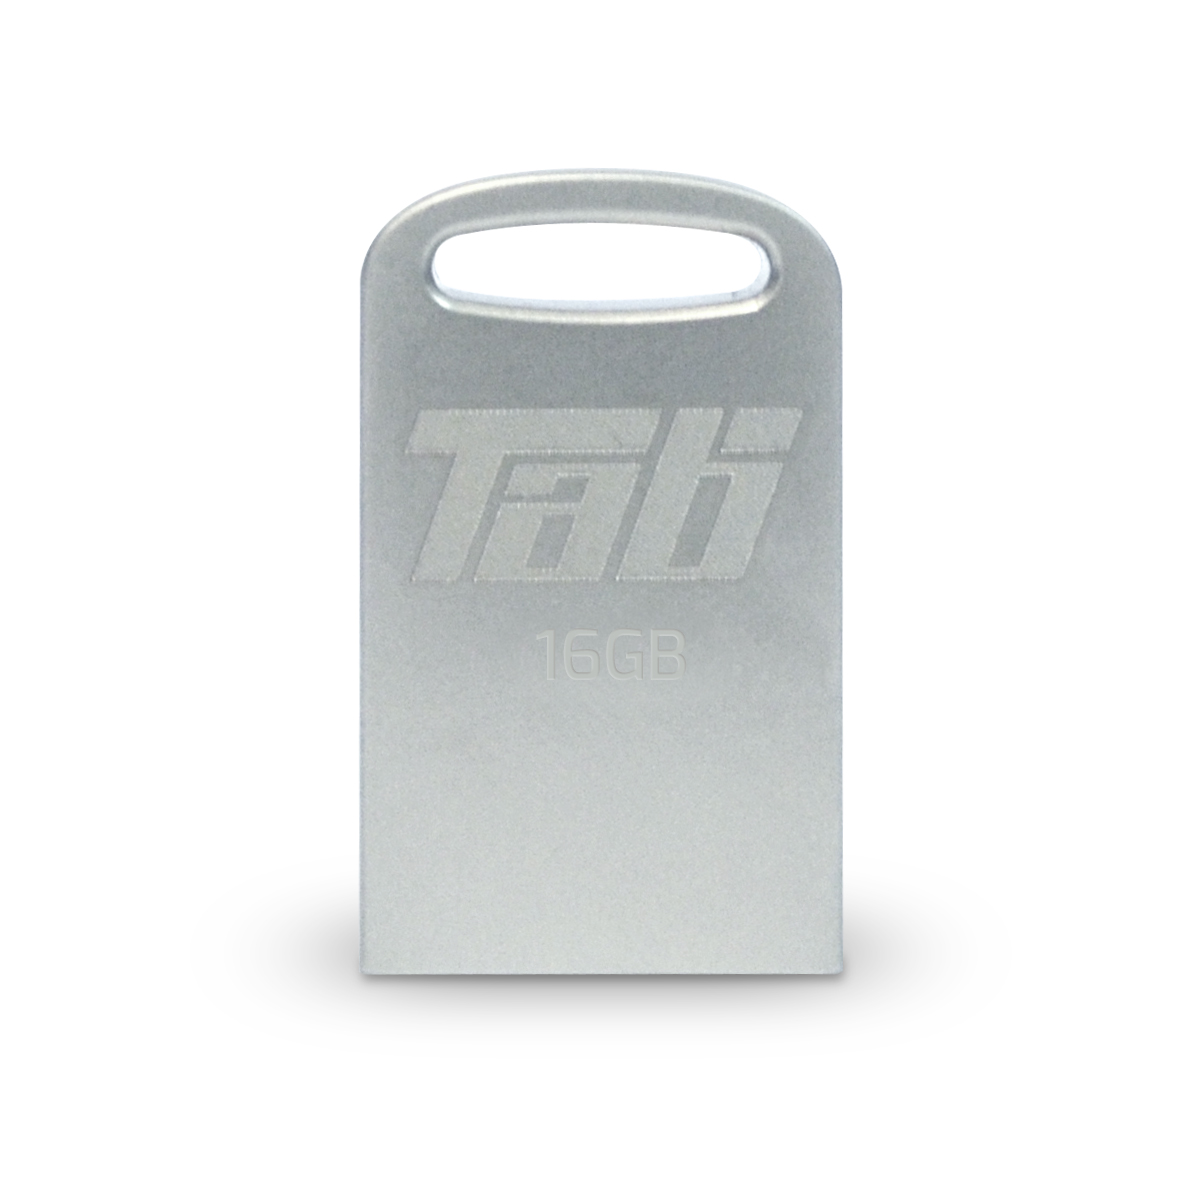 Flash disk Patriot Tab 16GB USB 3.0